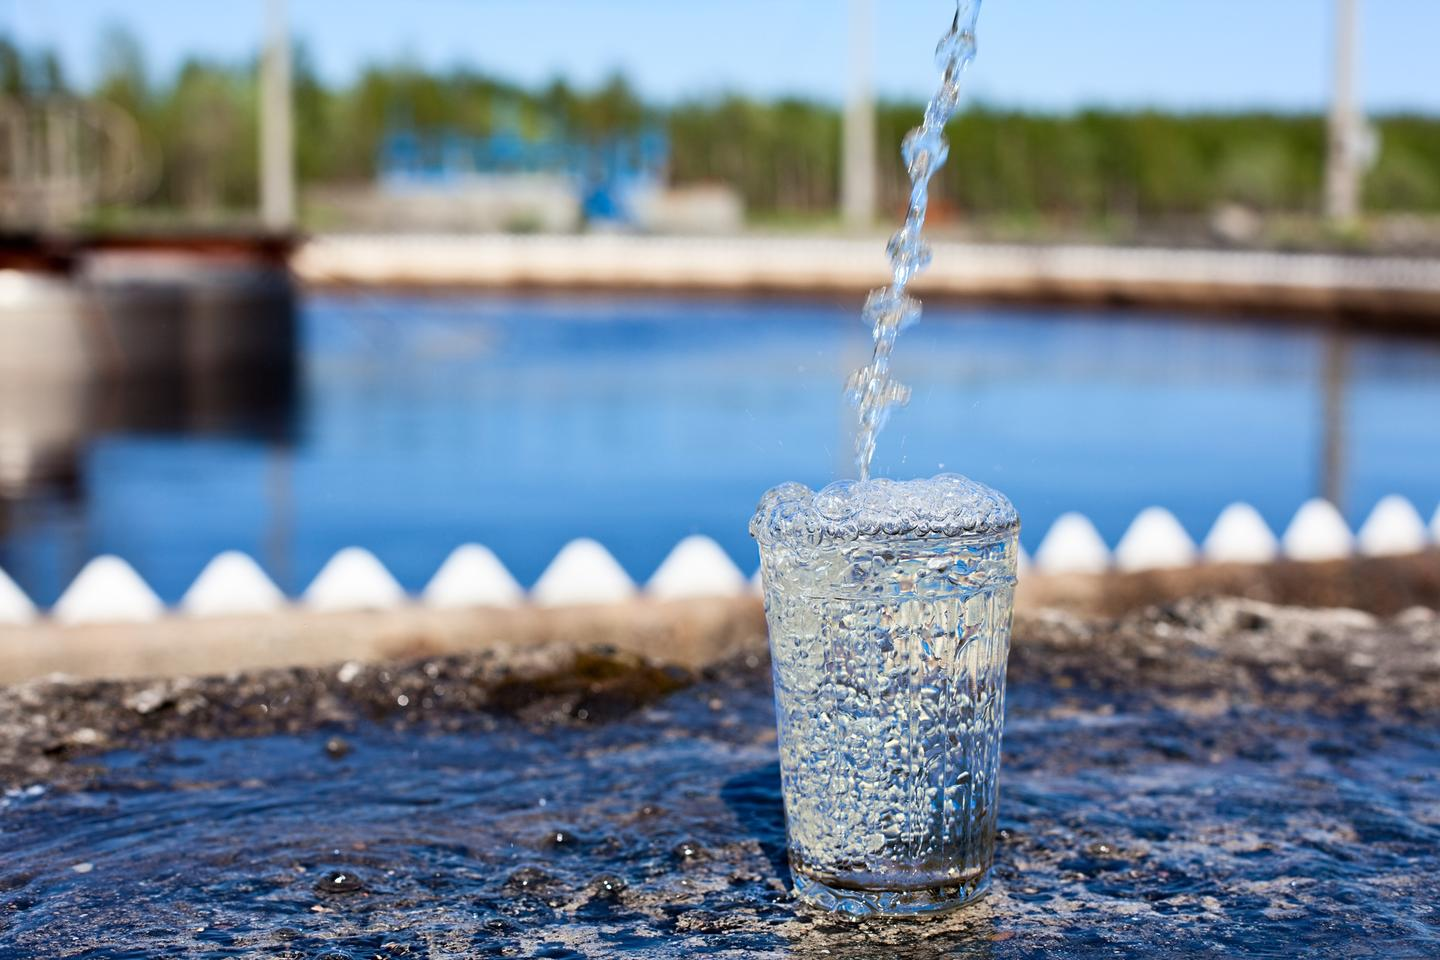 A new catalyst could help clean perchlorates out of water